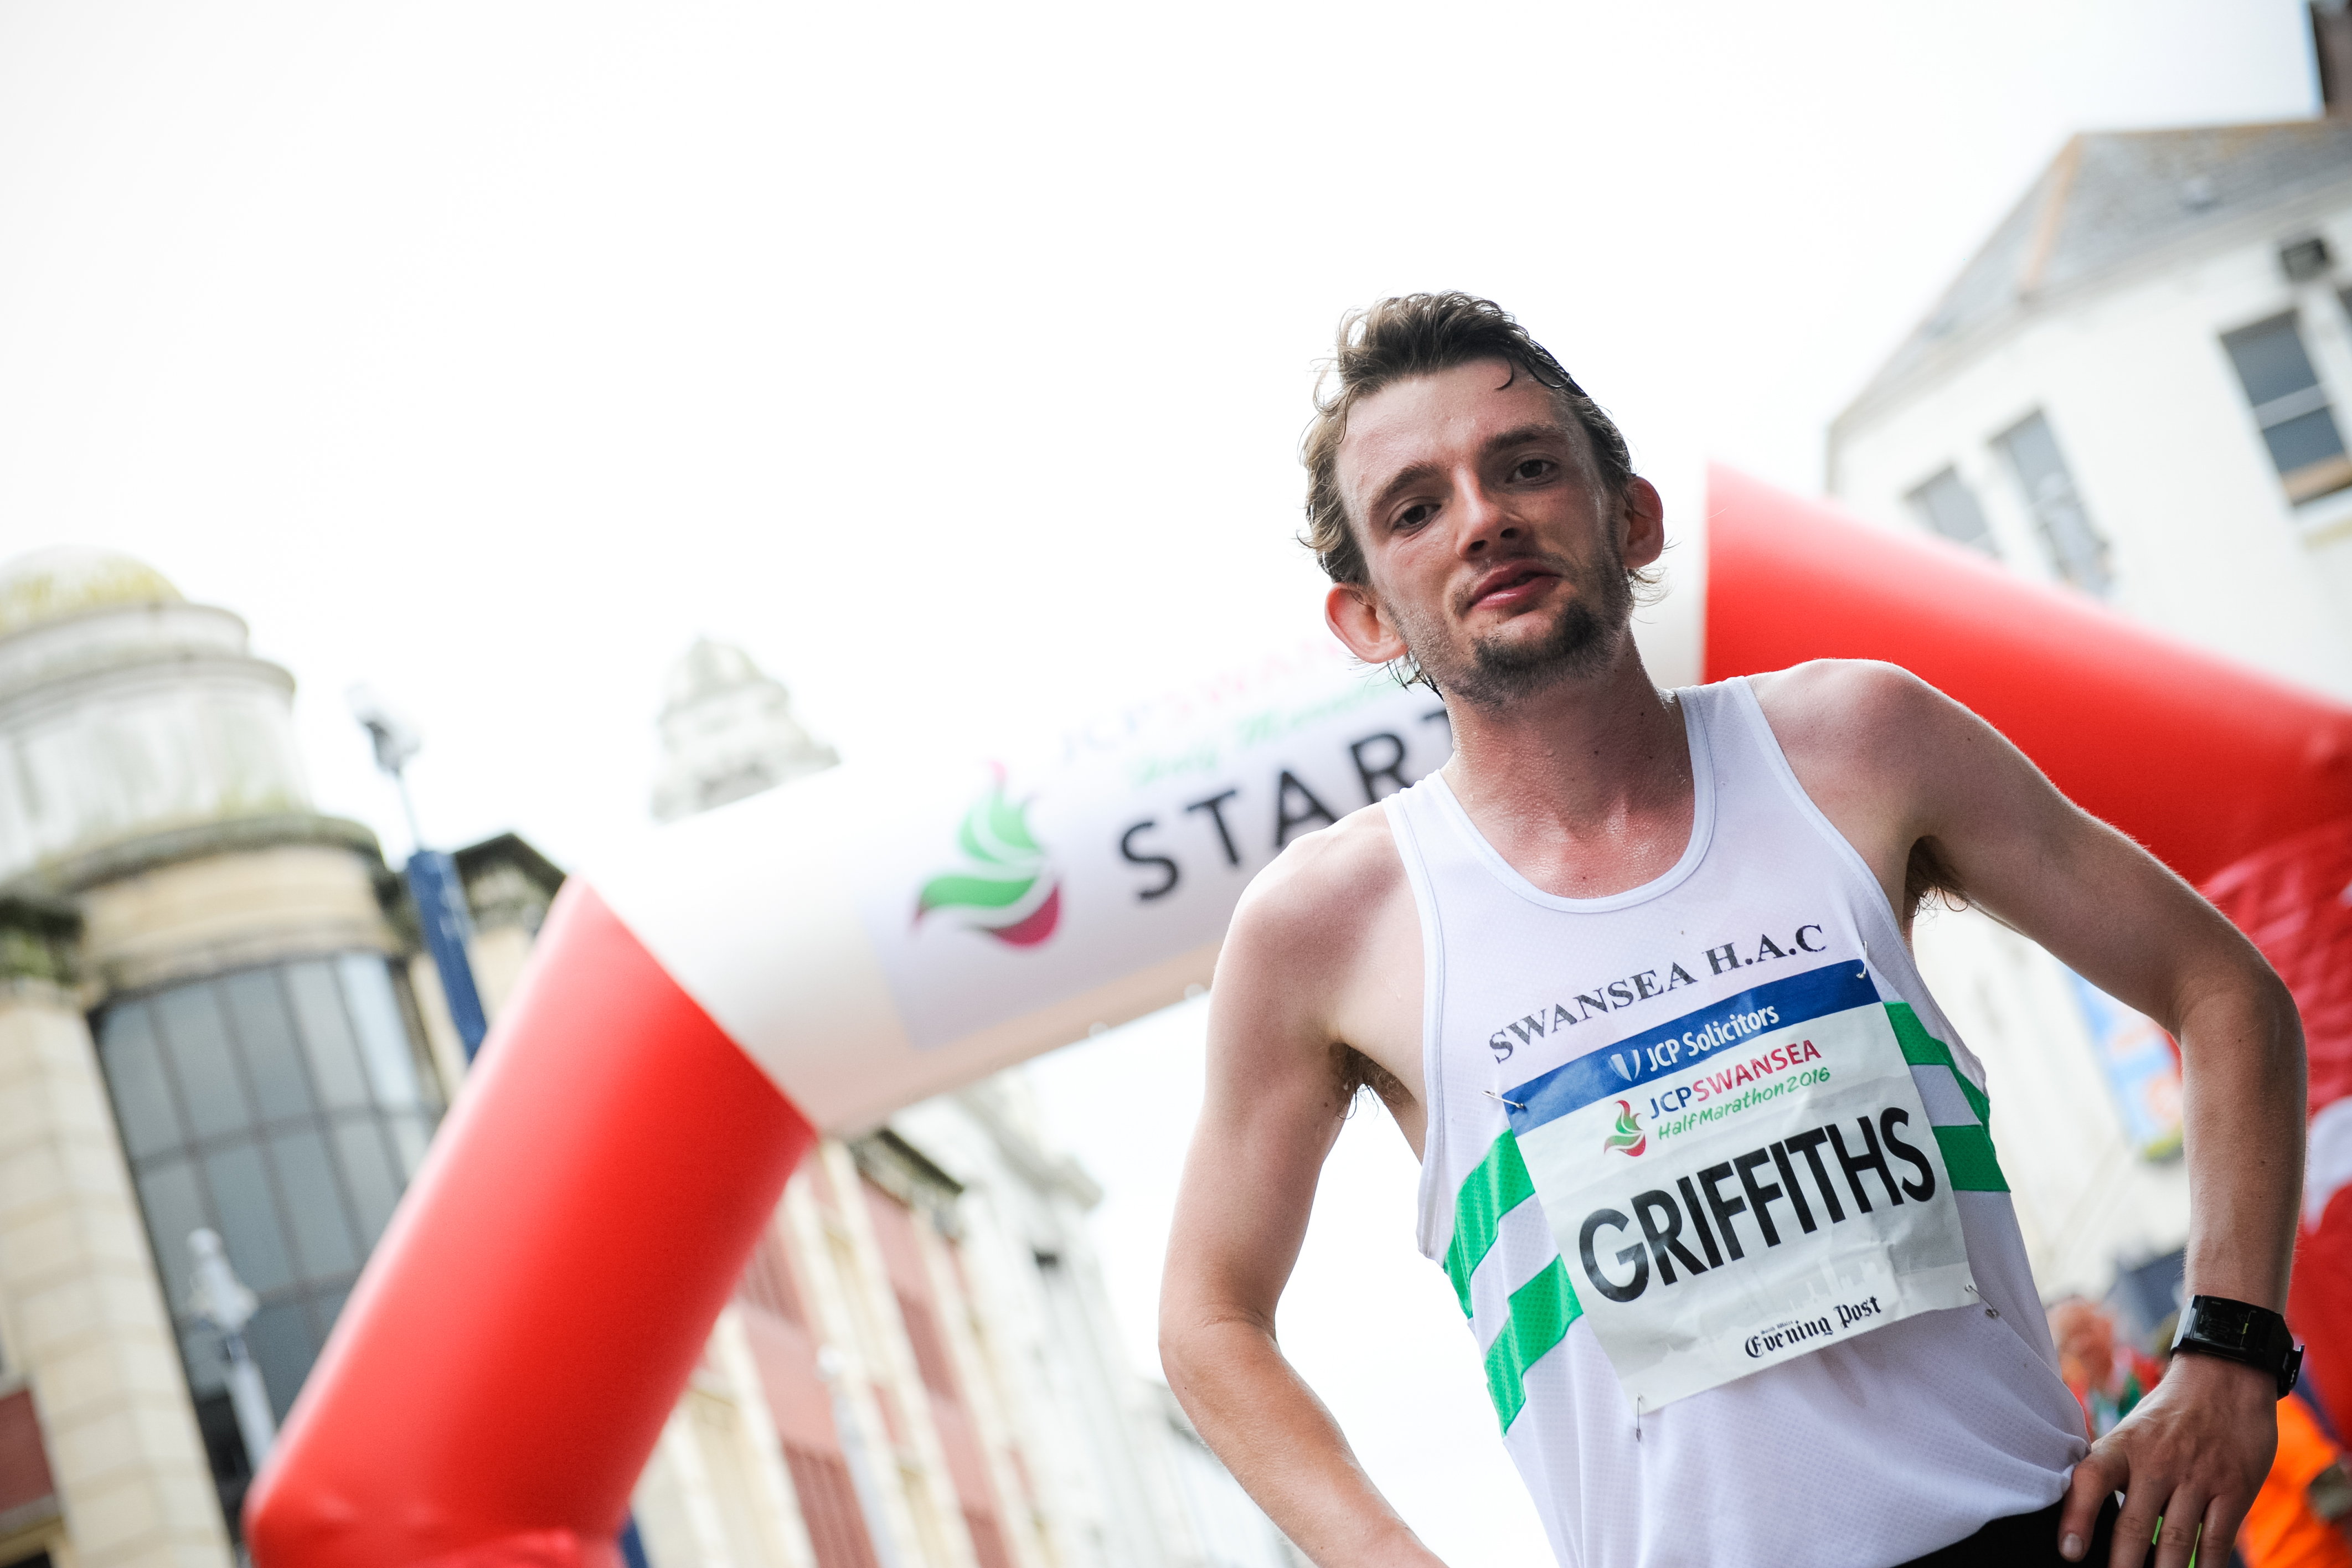 Dewi Griffiths and Hannah Walker win JCP Swansea Half Marathon 2016 with new course records